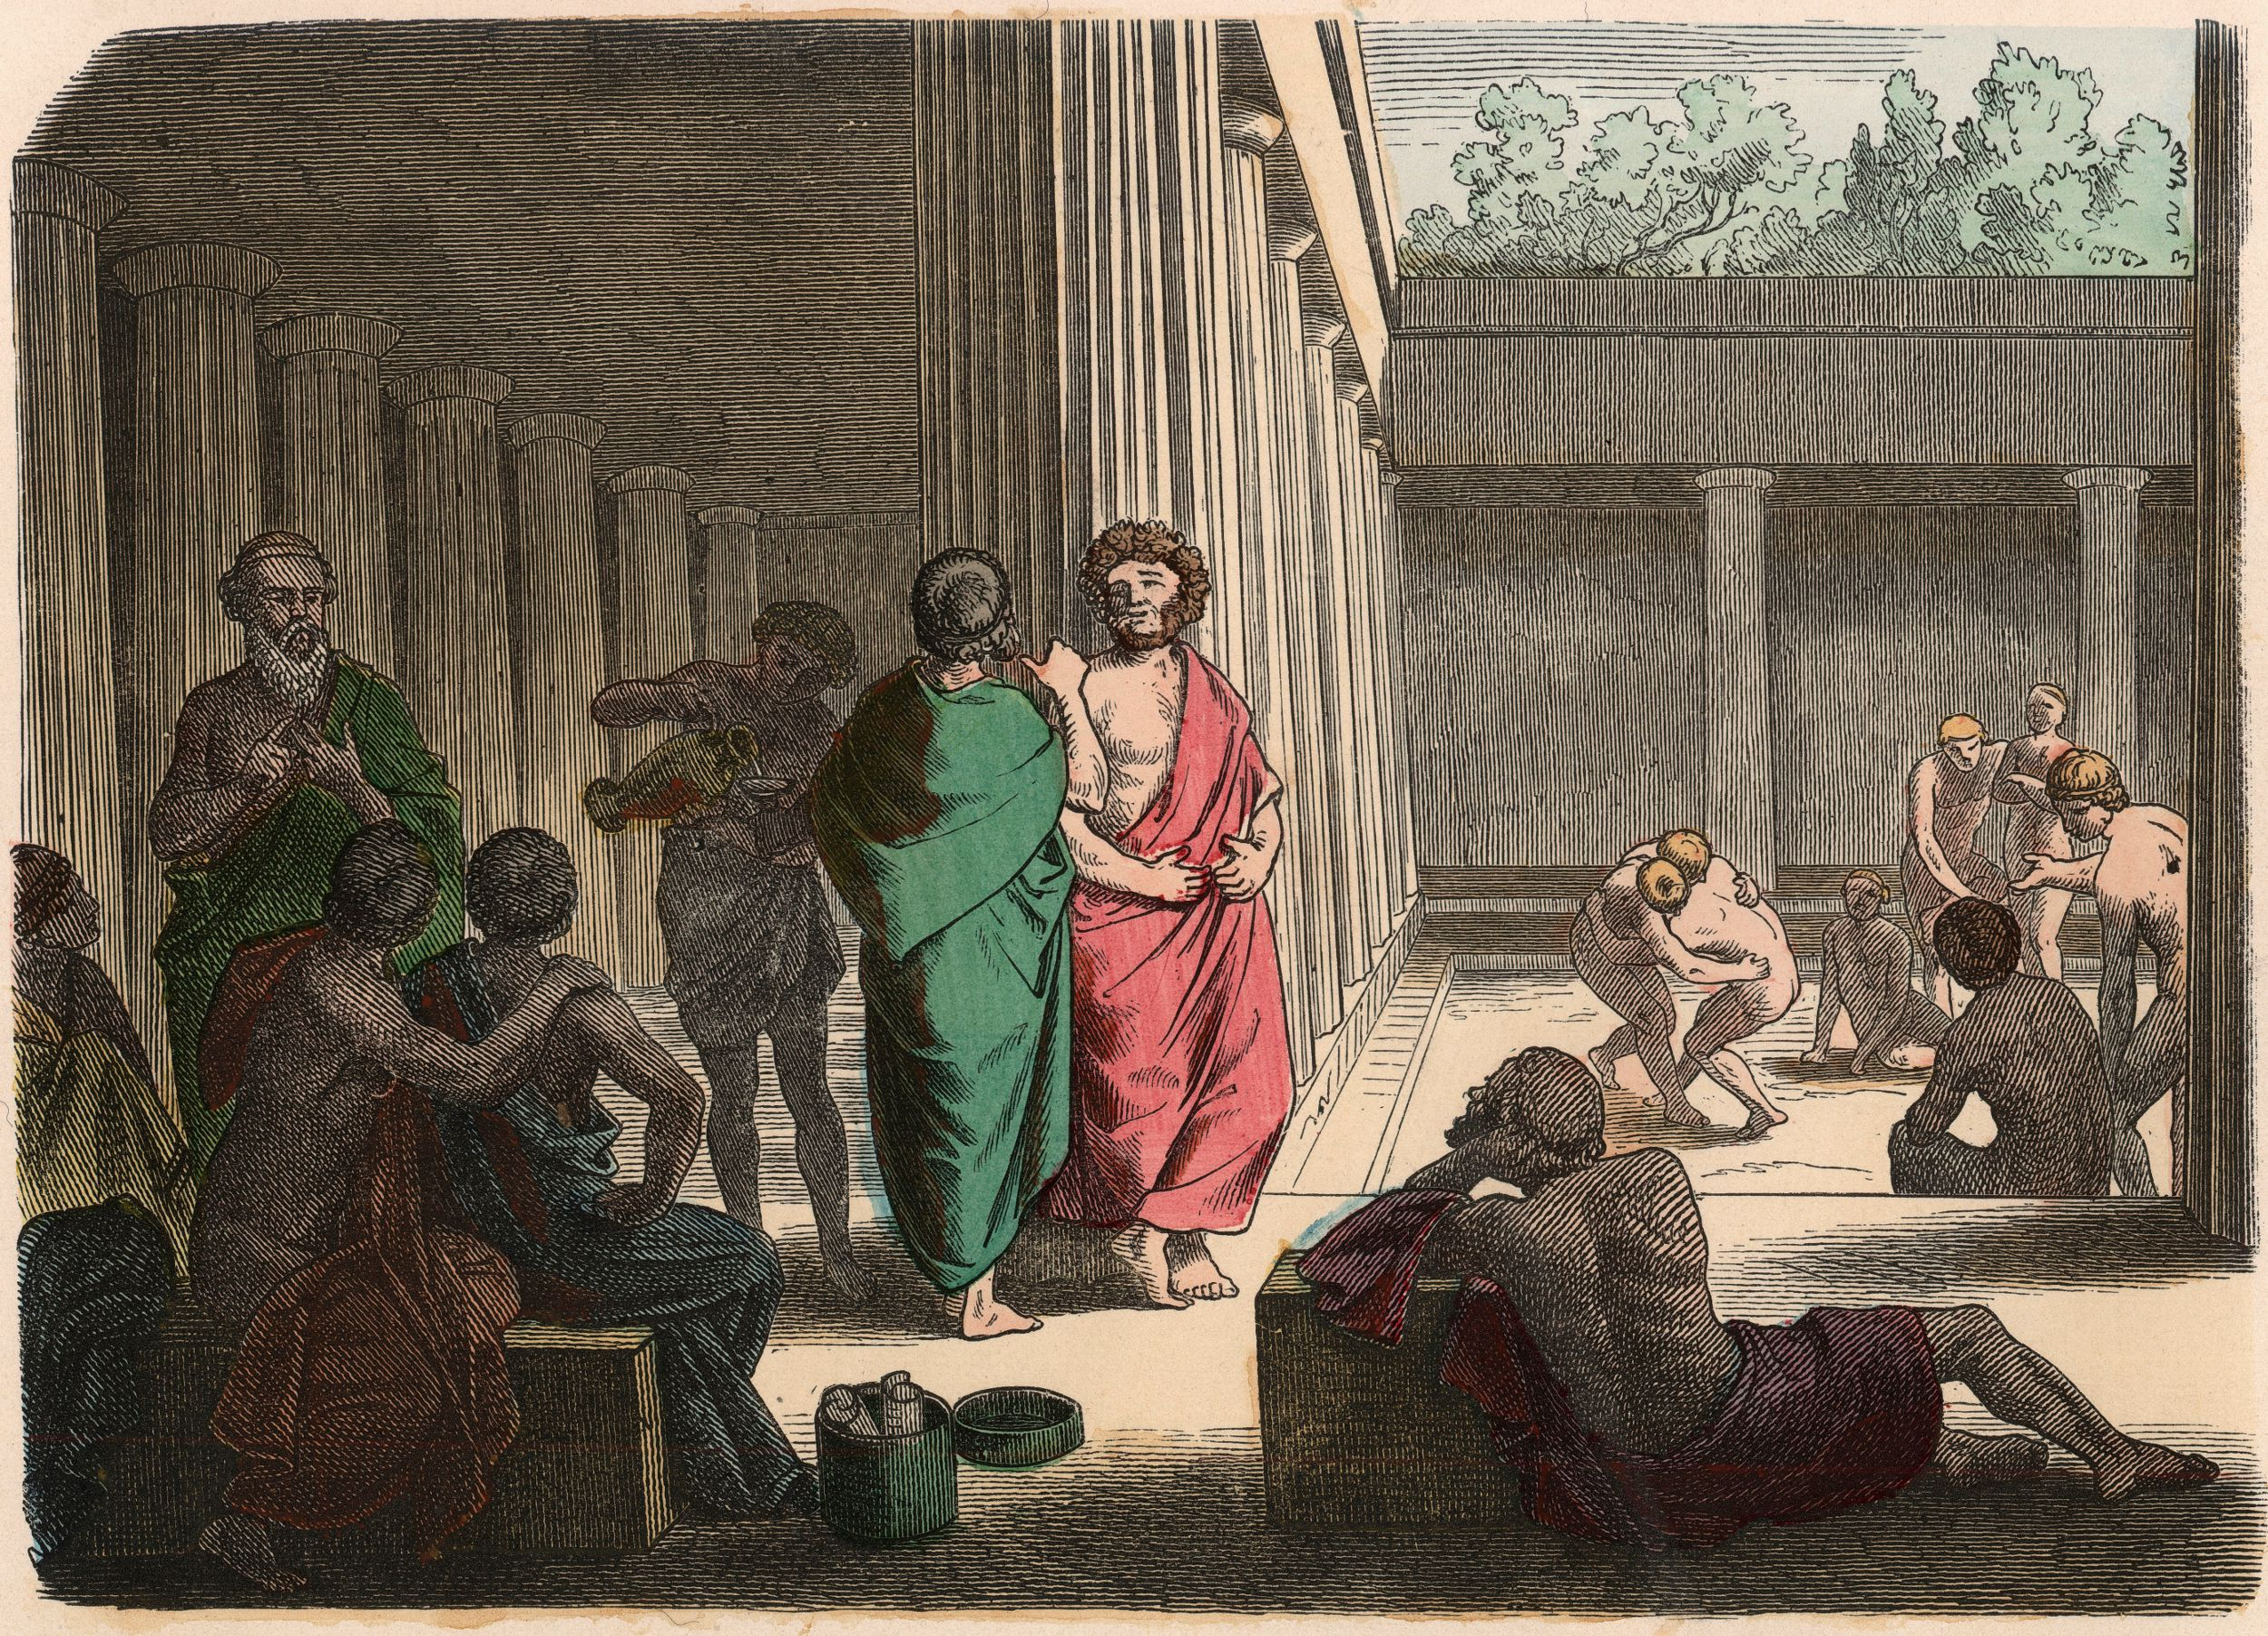 Ancient Greece: In the Gymnasium. Platonists, epicurians, cynics and wrestlers - Coloured engraving by Heinrich Leutemann (1824-1905)